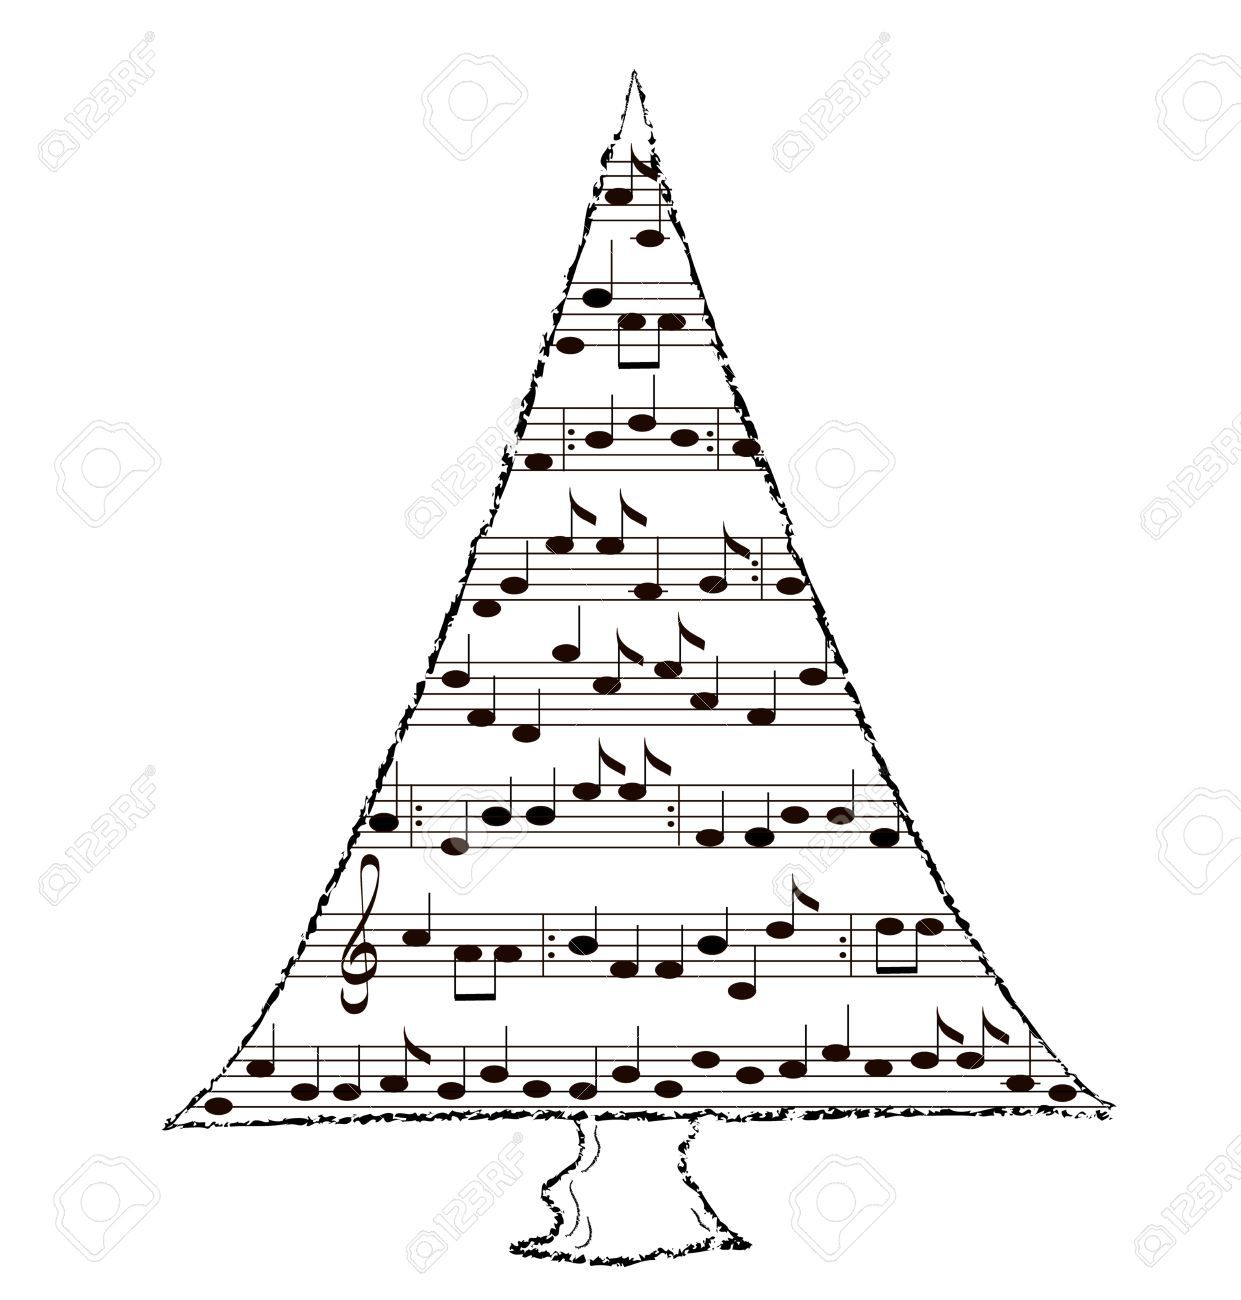 Christmas music clipart black and white 4 » Clipart Portal.